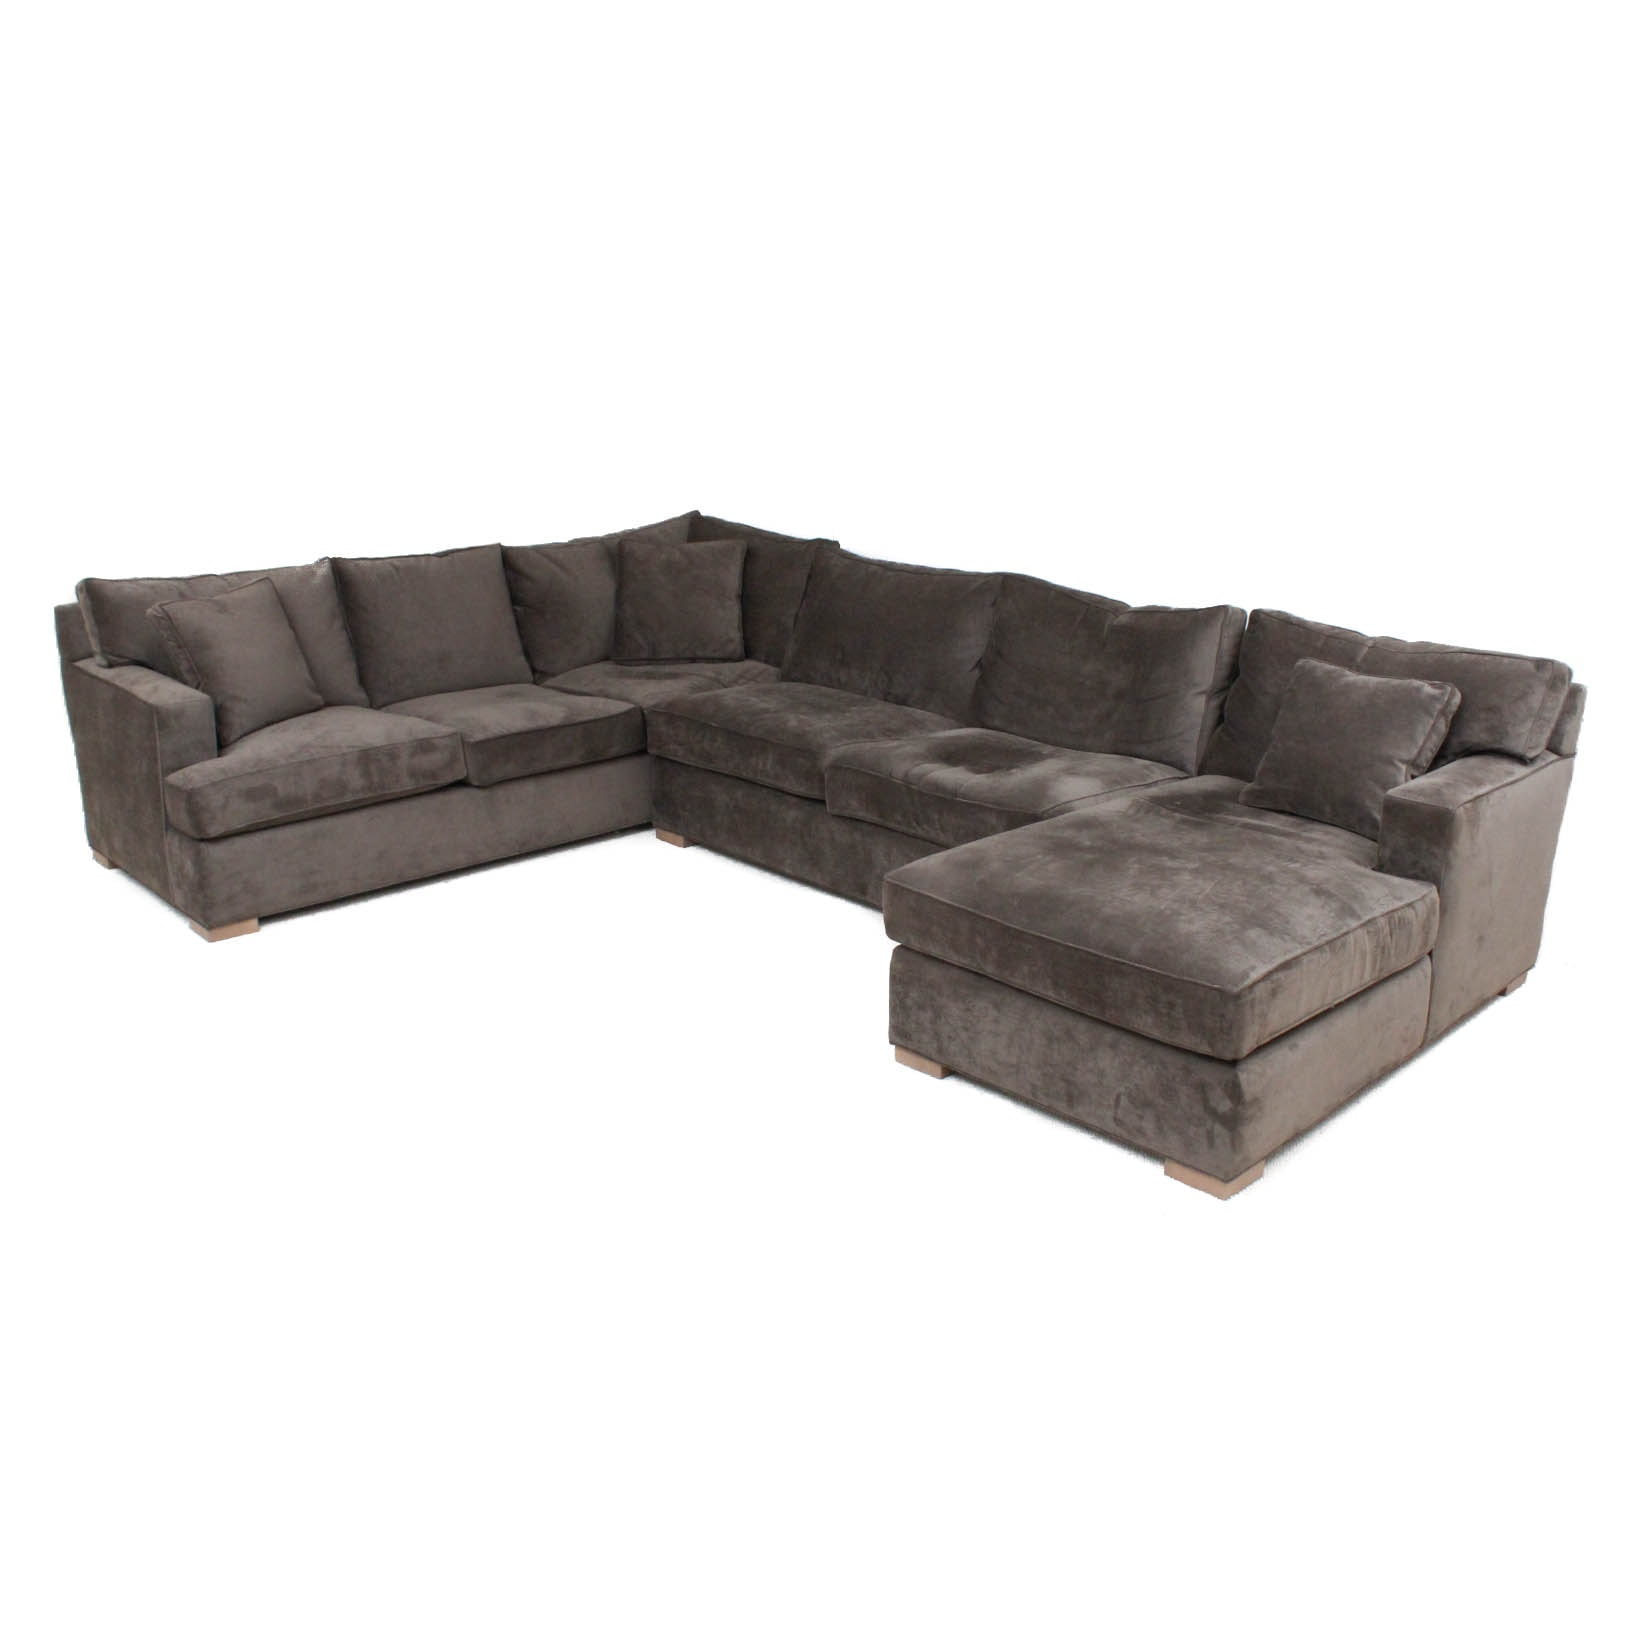 Delicieux Dune Microfiber Sectional From Arhaus Camden Collection ...